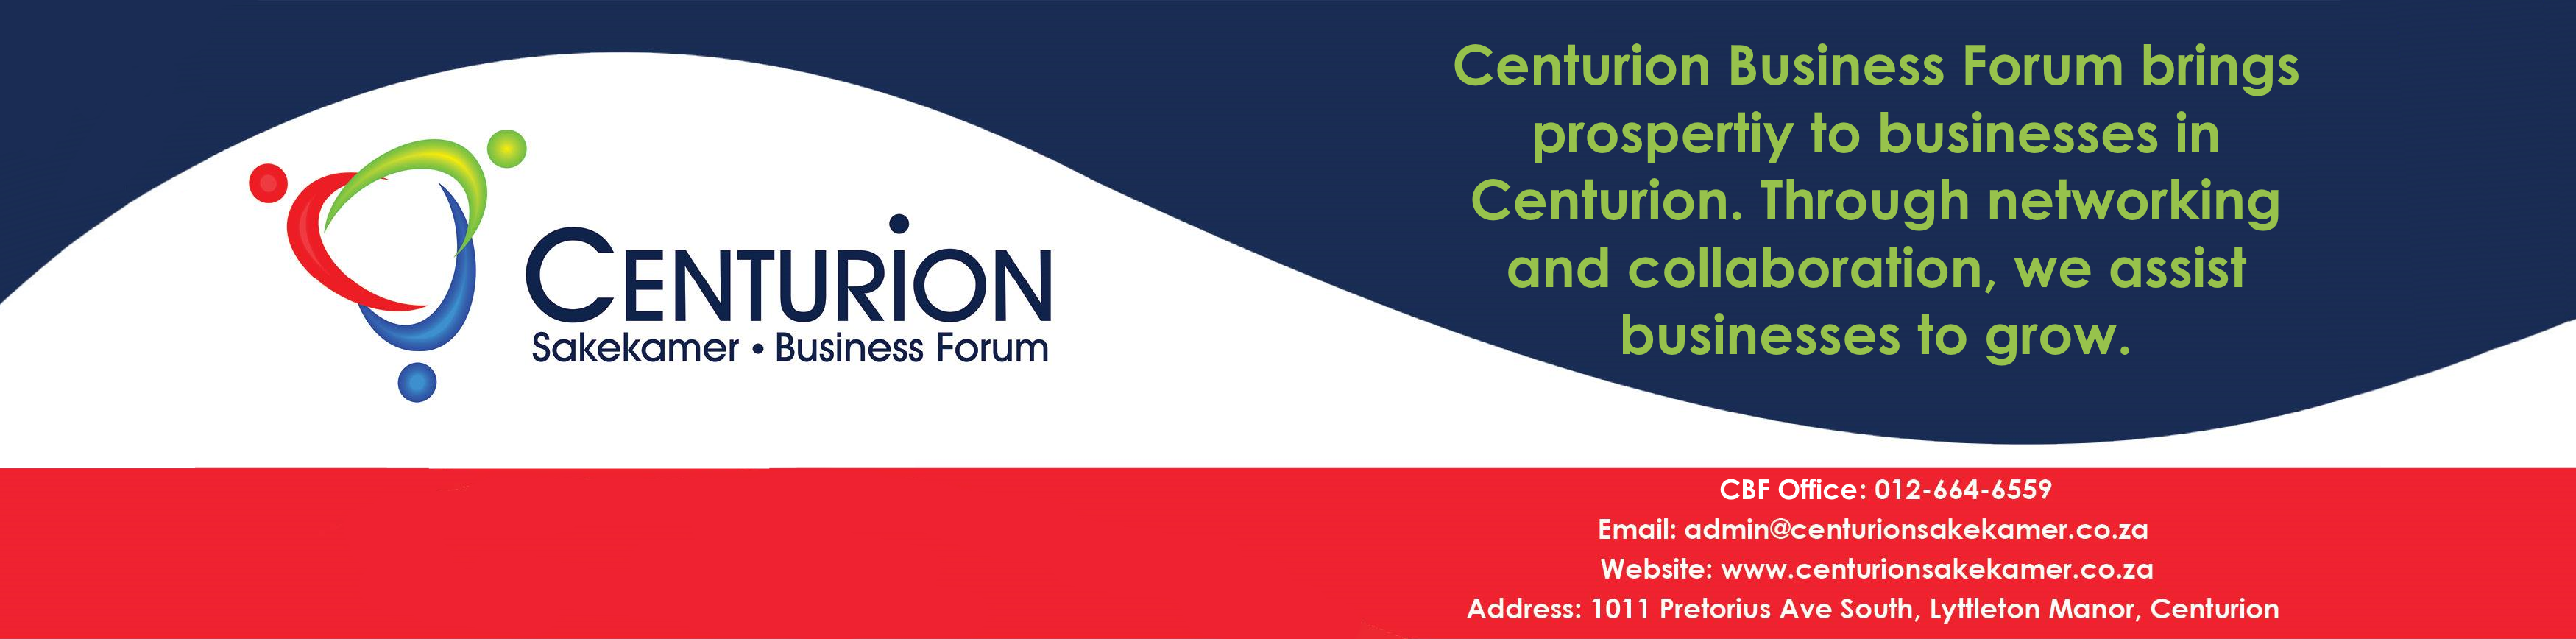 Centurion Business Forum